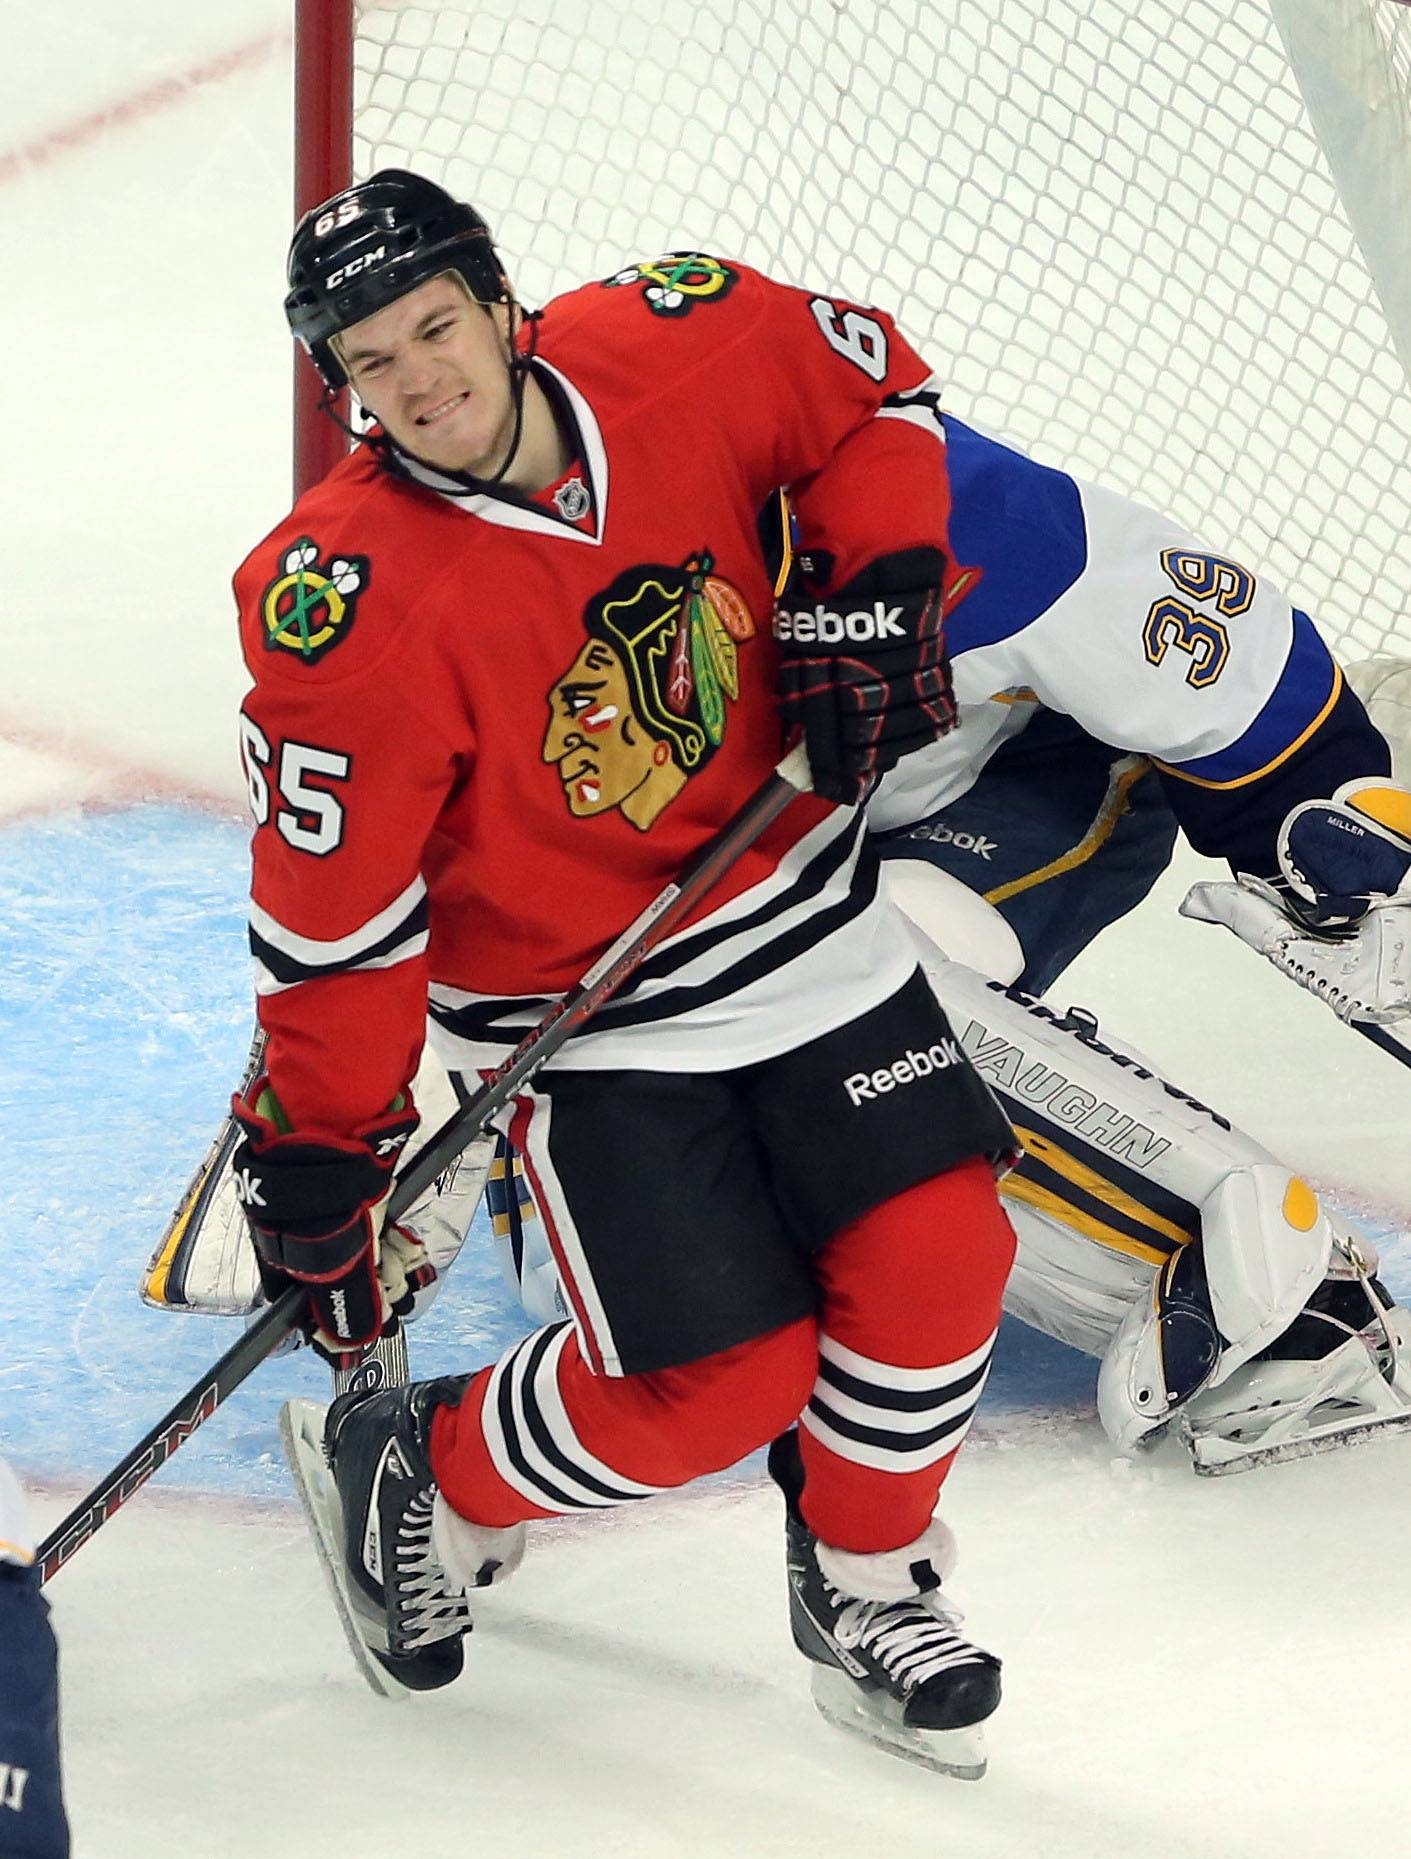 Chicago Blackhawks center Andrew Shaw may not play against the Minnesota Wild in Game 2 of the Western Conference semifinals Sunday because of a lower body injury he suffered during Friday's series opener.